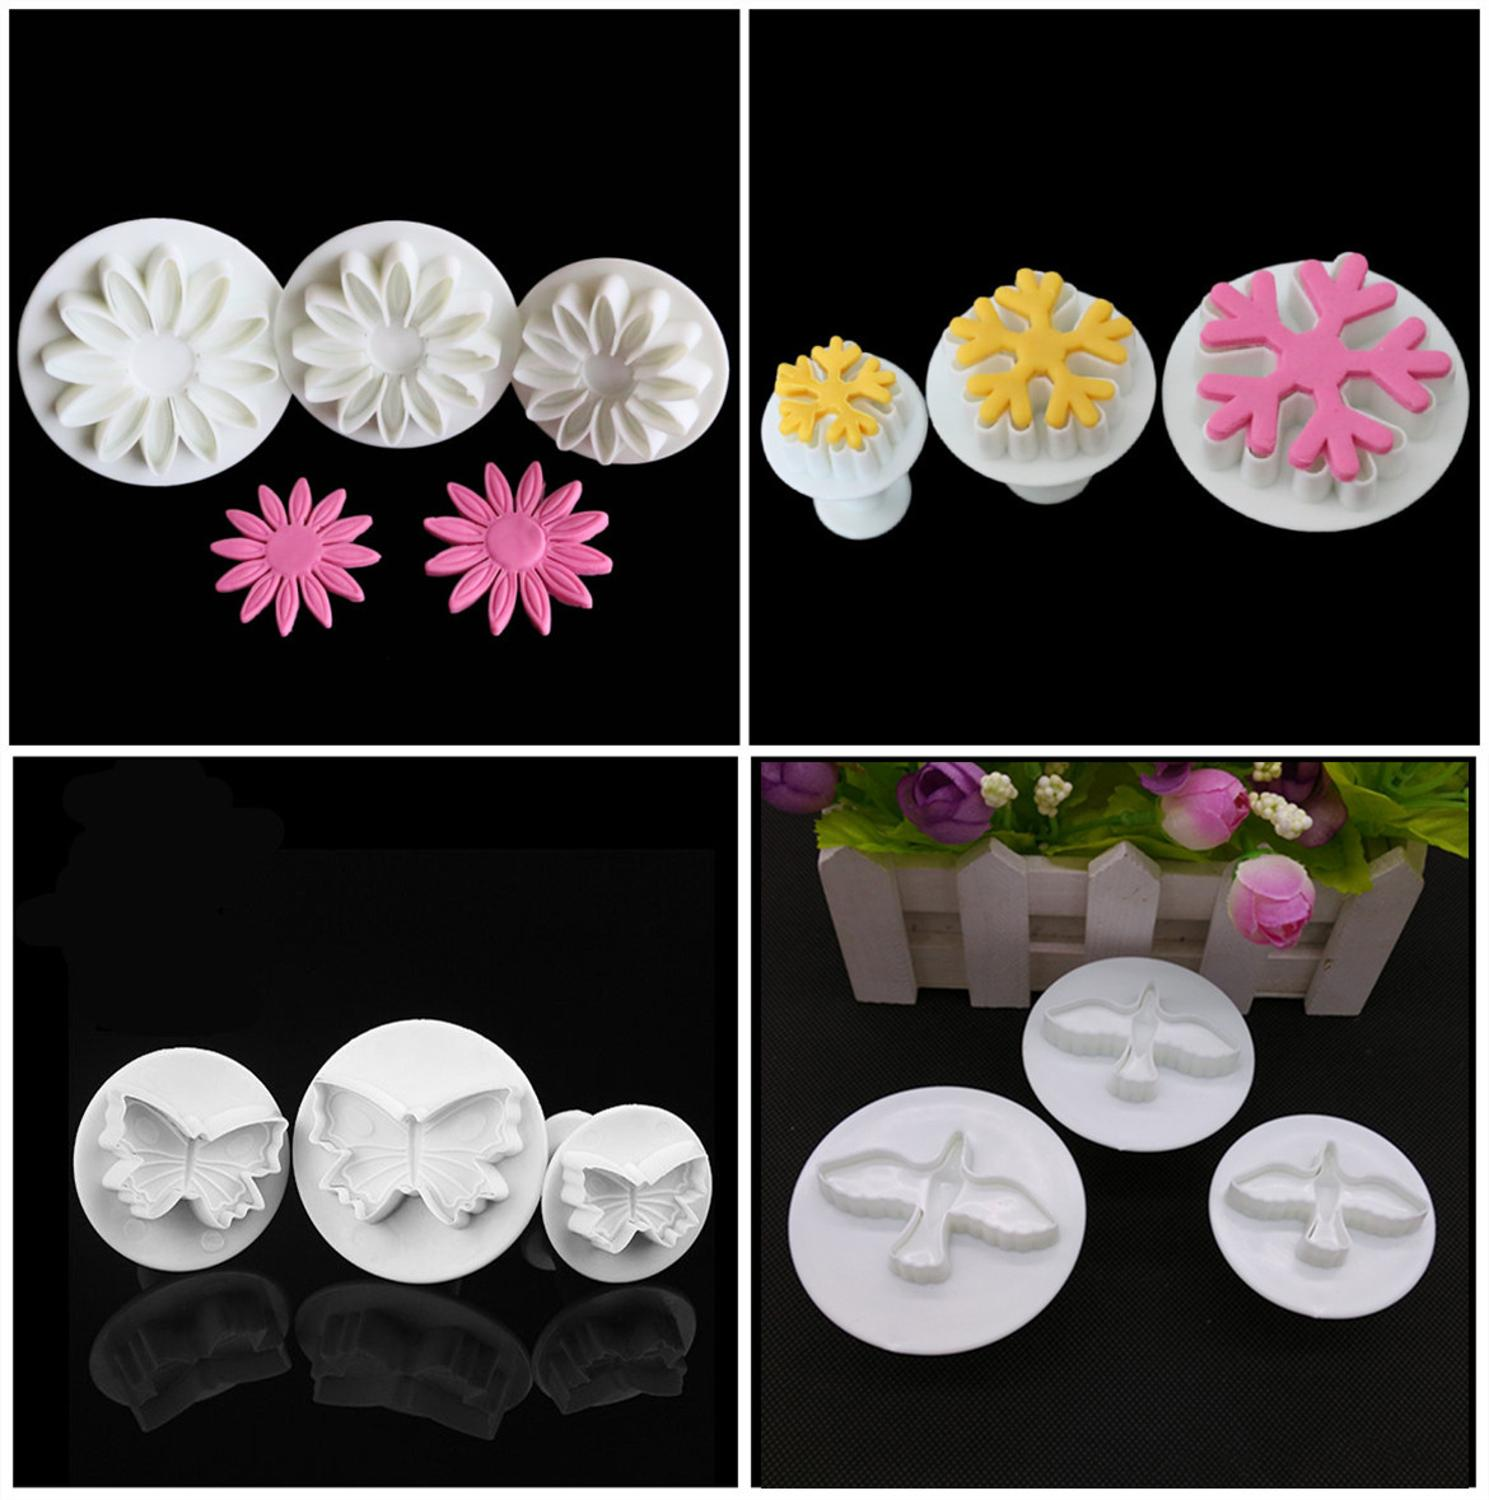 3Pc Plastic Fondant <font><b>Cake</b></font> <font><b>Decorating</b></font> Sugar Craft Plunger biscuits cookie <font><b>Cutter</b></font> <font><b>Flower</b></font> snowflake Pigeon star Mold Home <font><b>Cake</b></font> <font><b>tools</b></font> image